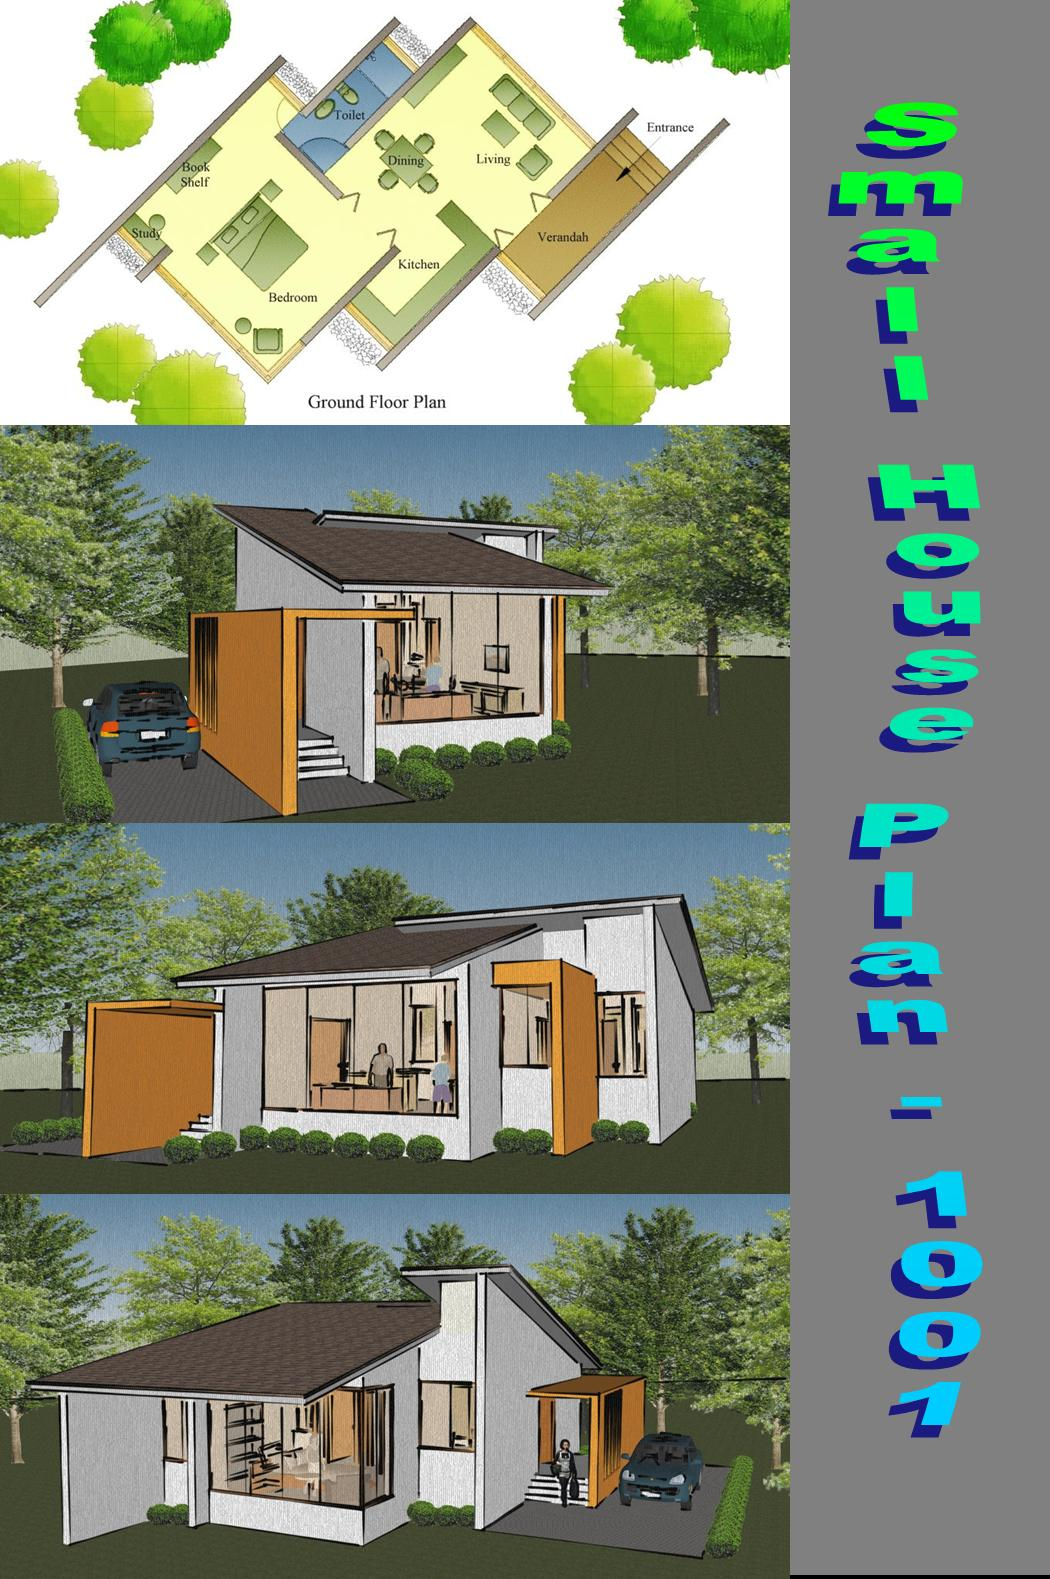 Home plans in india 5 best small home plans from for Best house designs 2013